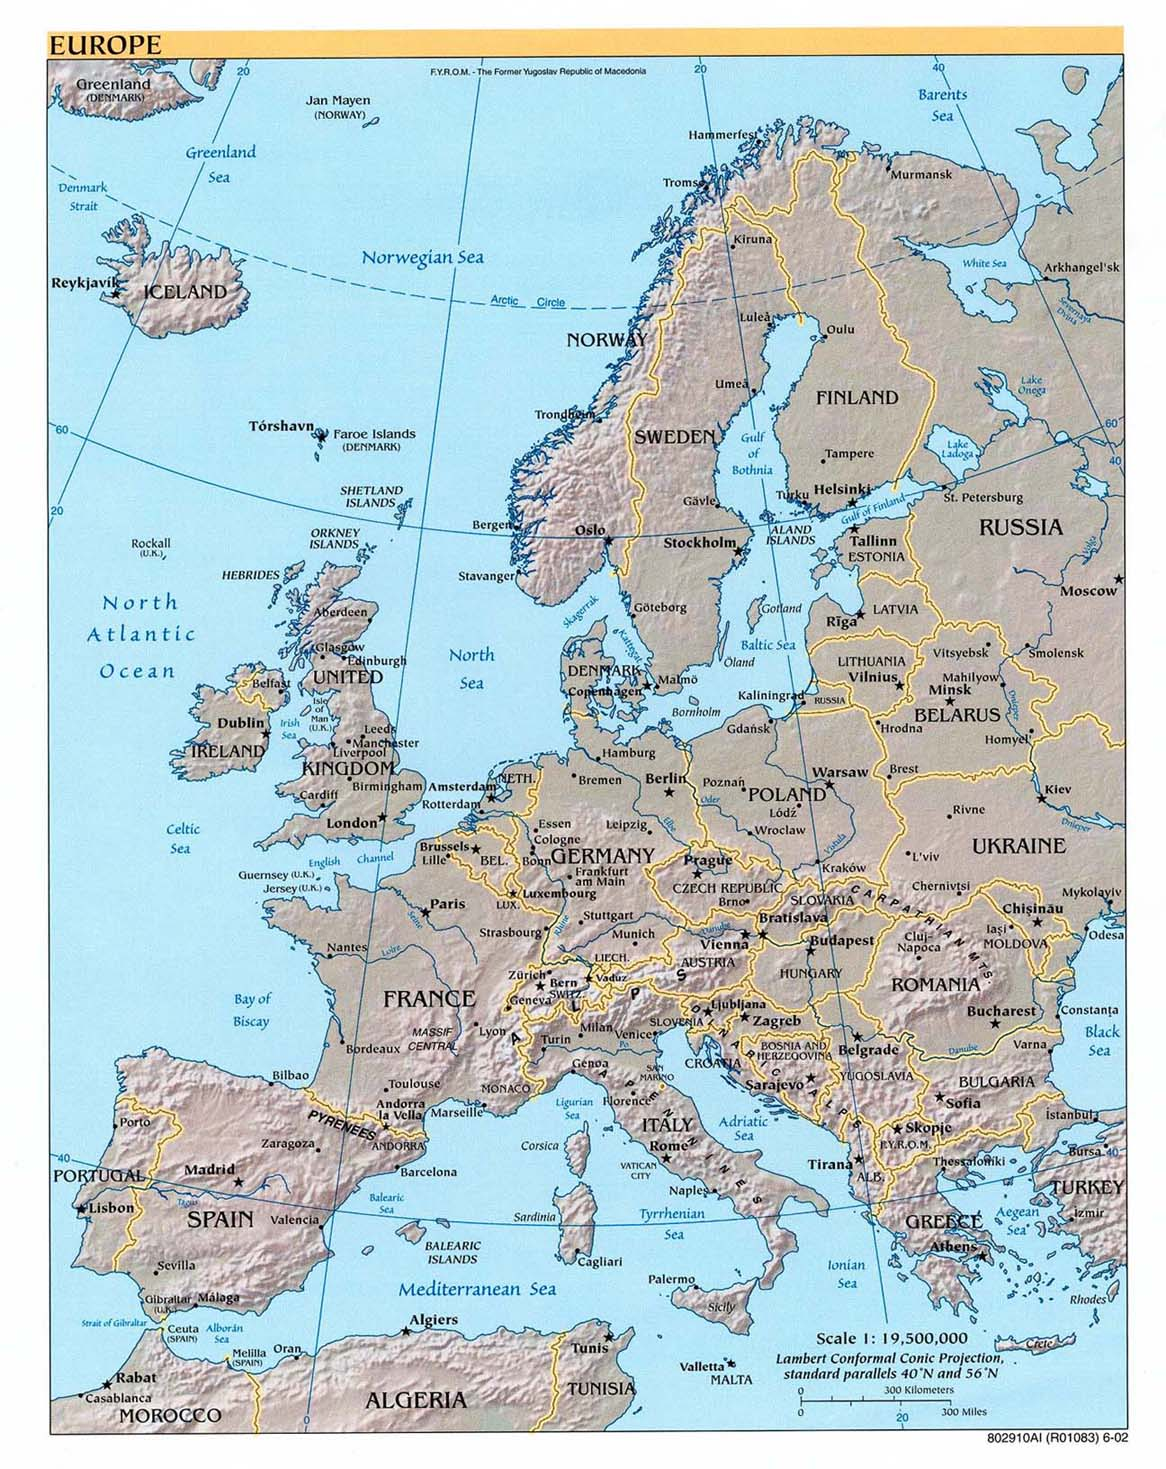 Europe shaded relief map 2002